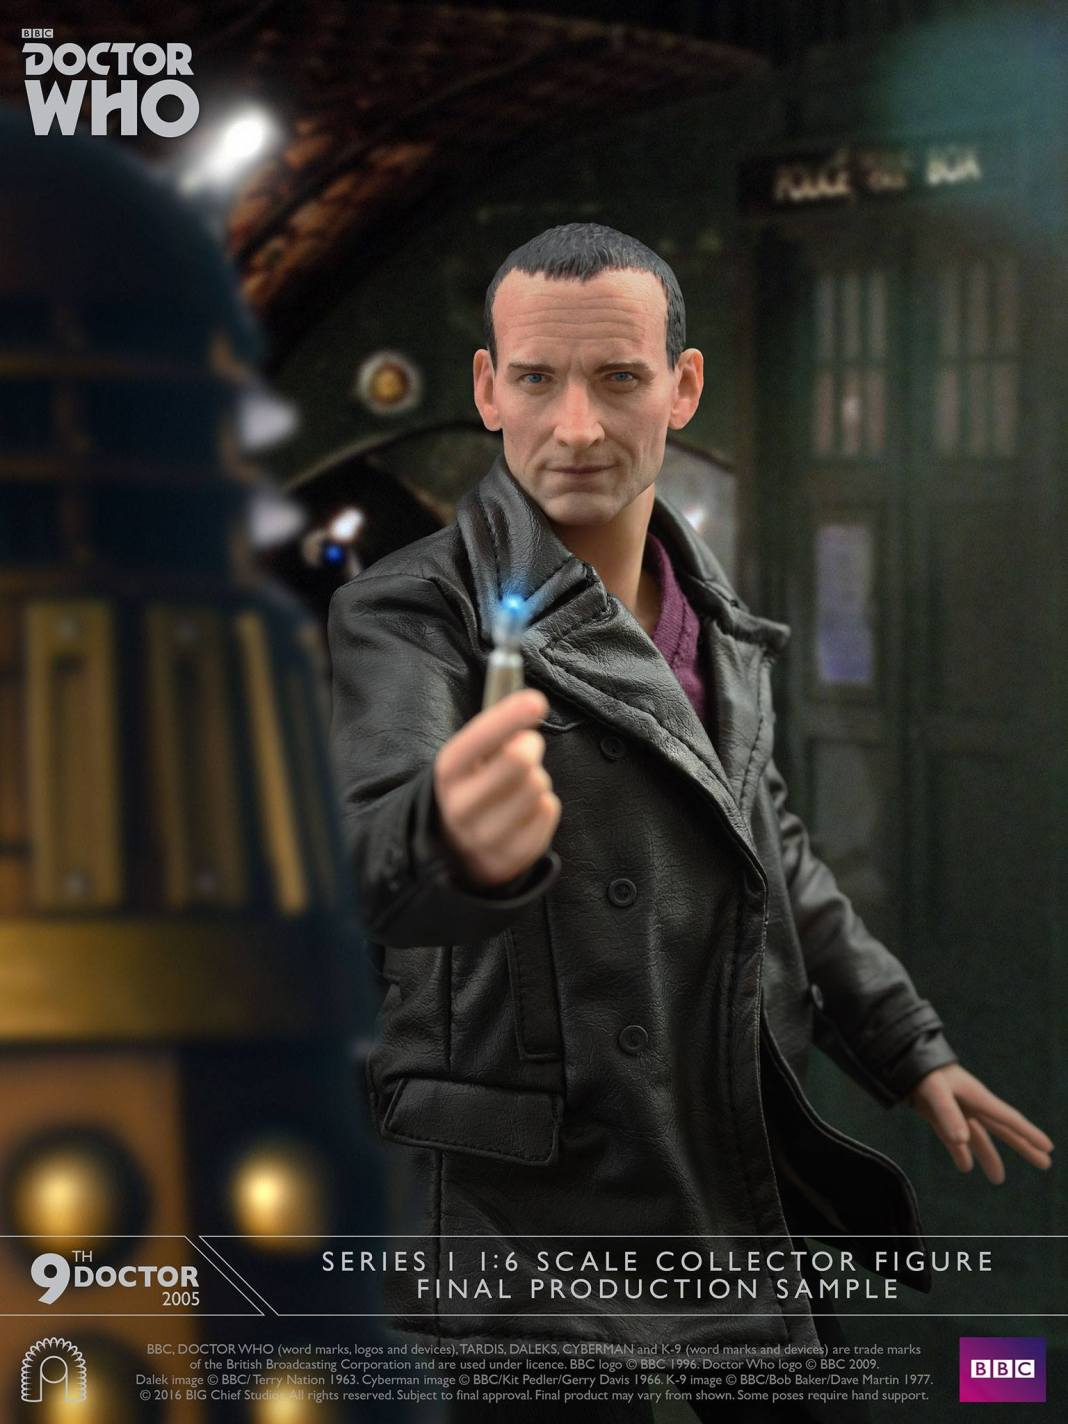 9th Doctor Series 1 - 1:6 Scale Figurine (c) Big Chief Studios